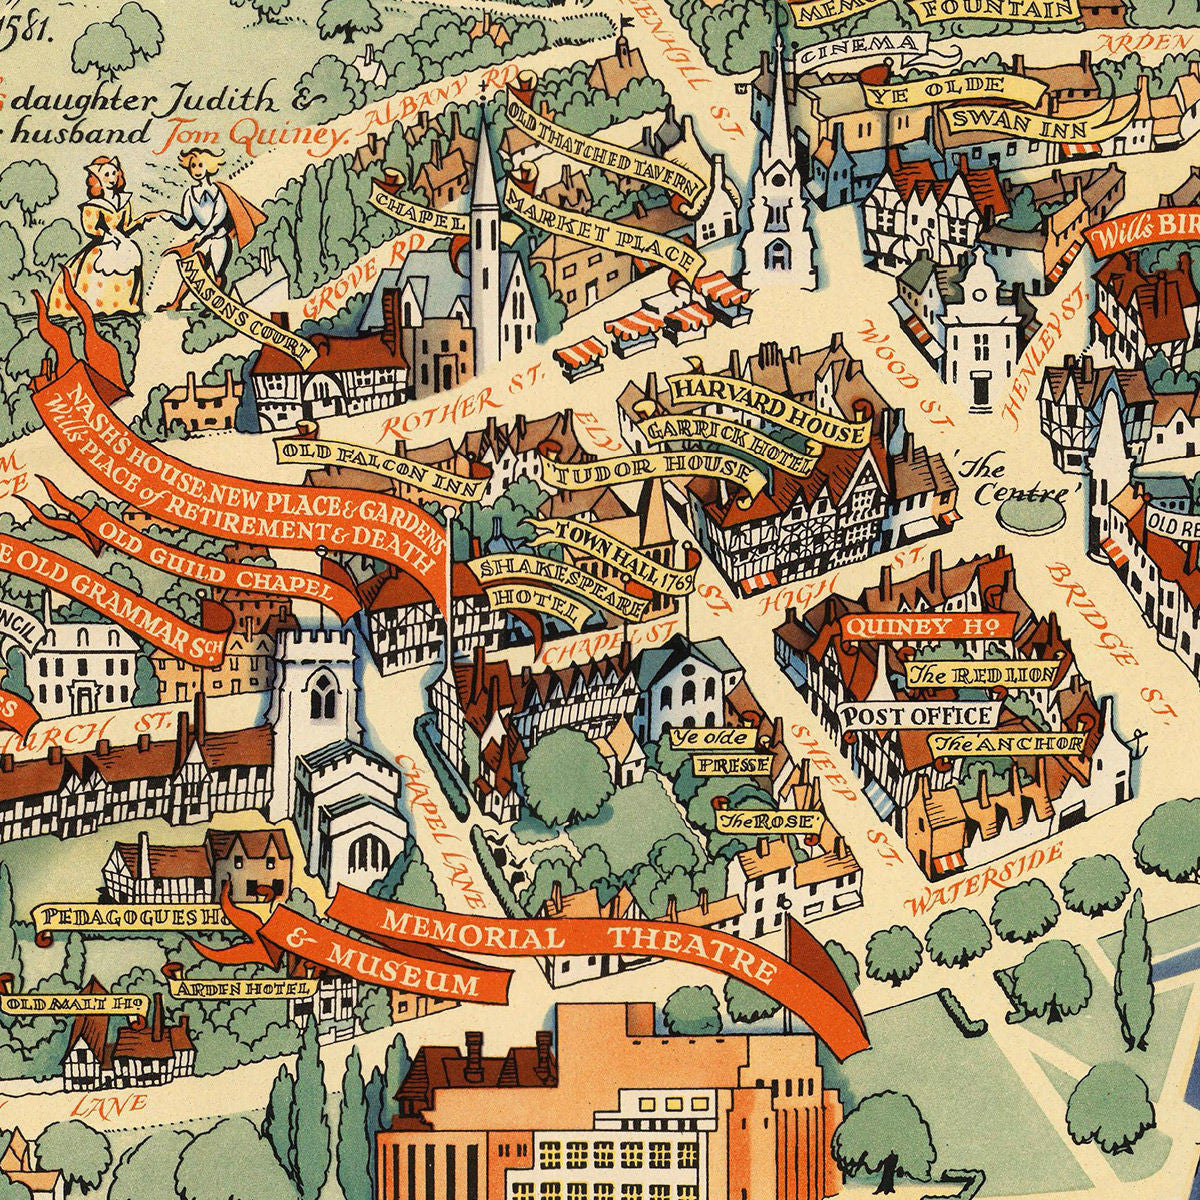 Map Of Stratford Upon Avon Stratford upon Avon, Shakespeare, Vintage Pictorial Map